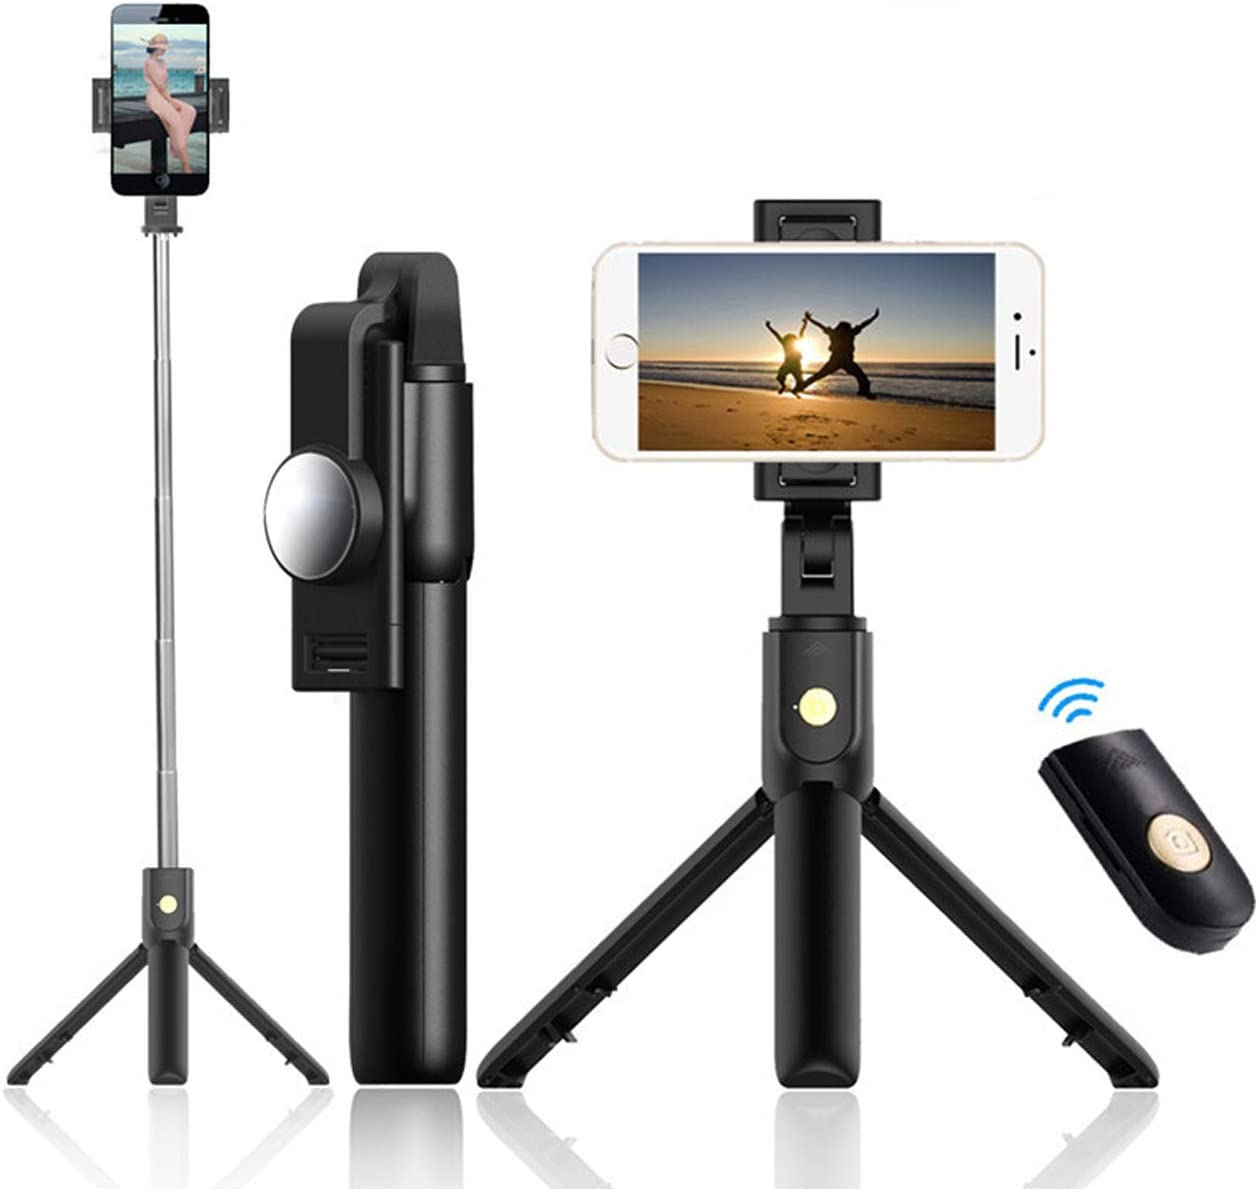 62 inch Ultra-Long Extendable Selfie Stick Tripod Stand Aluminum Alloy All-in-1 with Bluetooth Remote for iPhone XR MAX XS X 8 7 6 Plus Samsung Galaxy S10 S9 S8 Android GoPro Selfie Stick Tripod